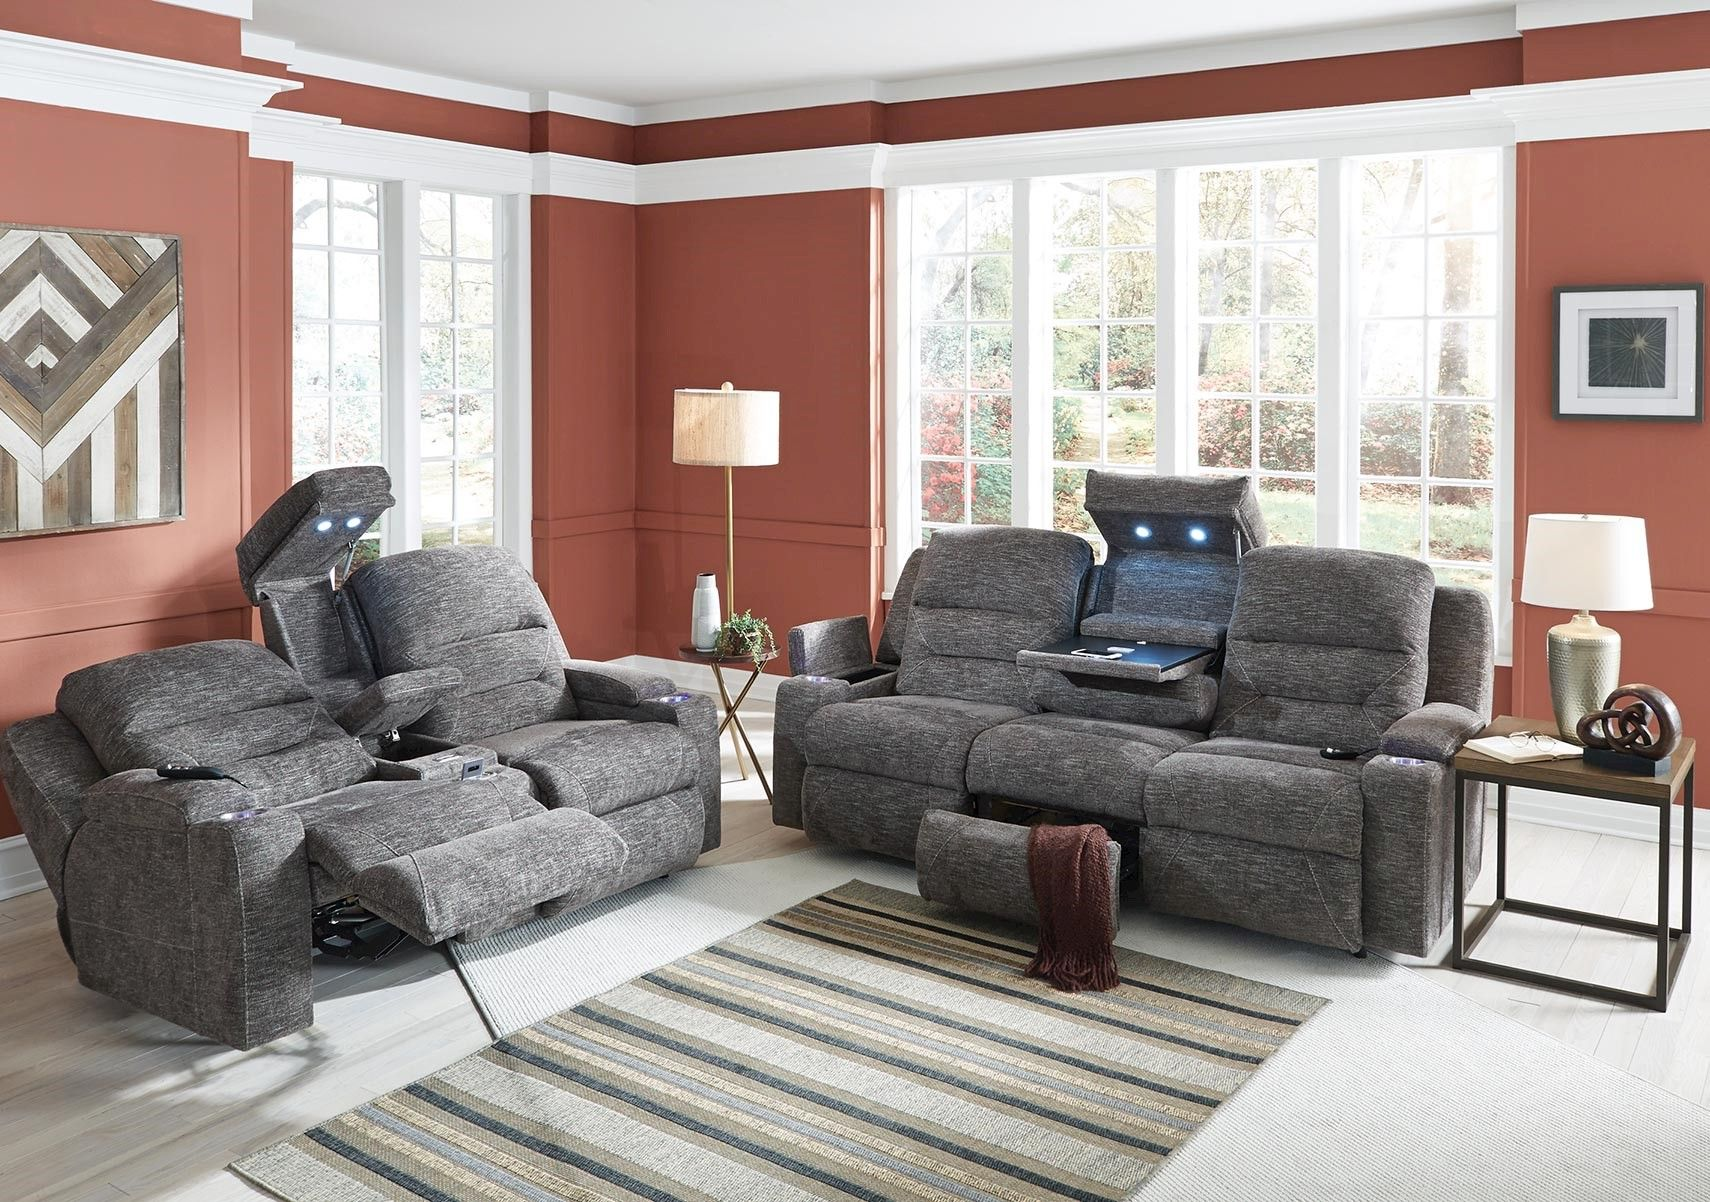 10 Most Popular Power Living Room Set